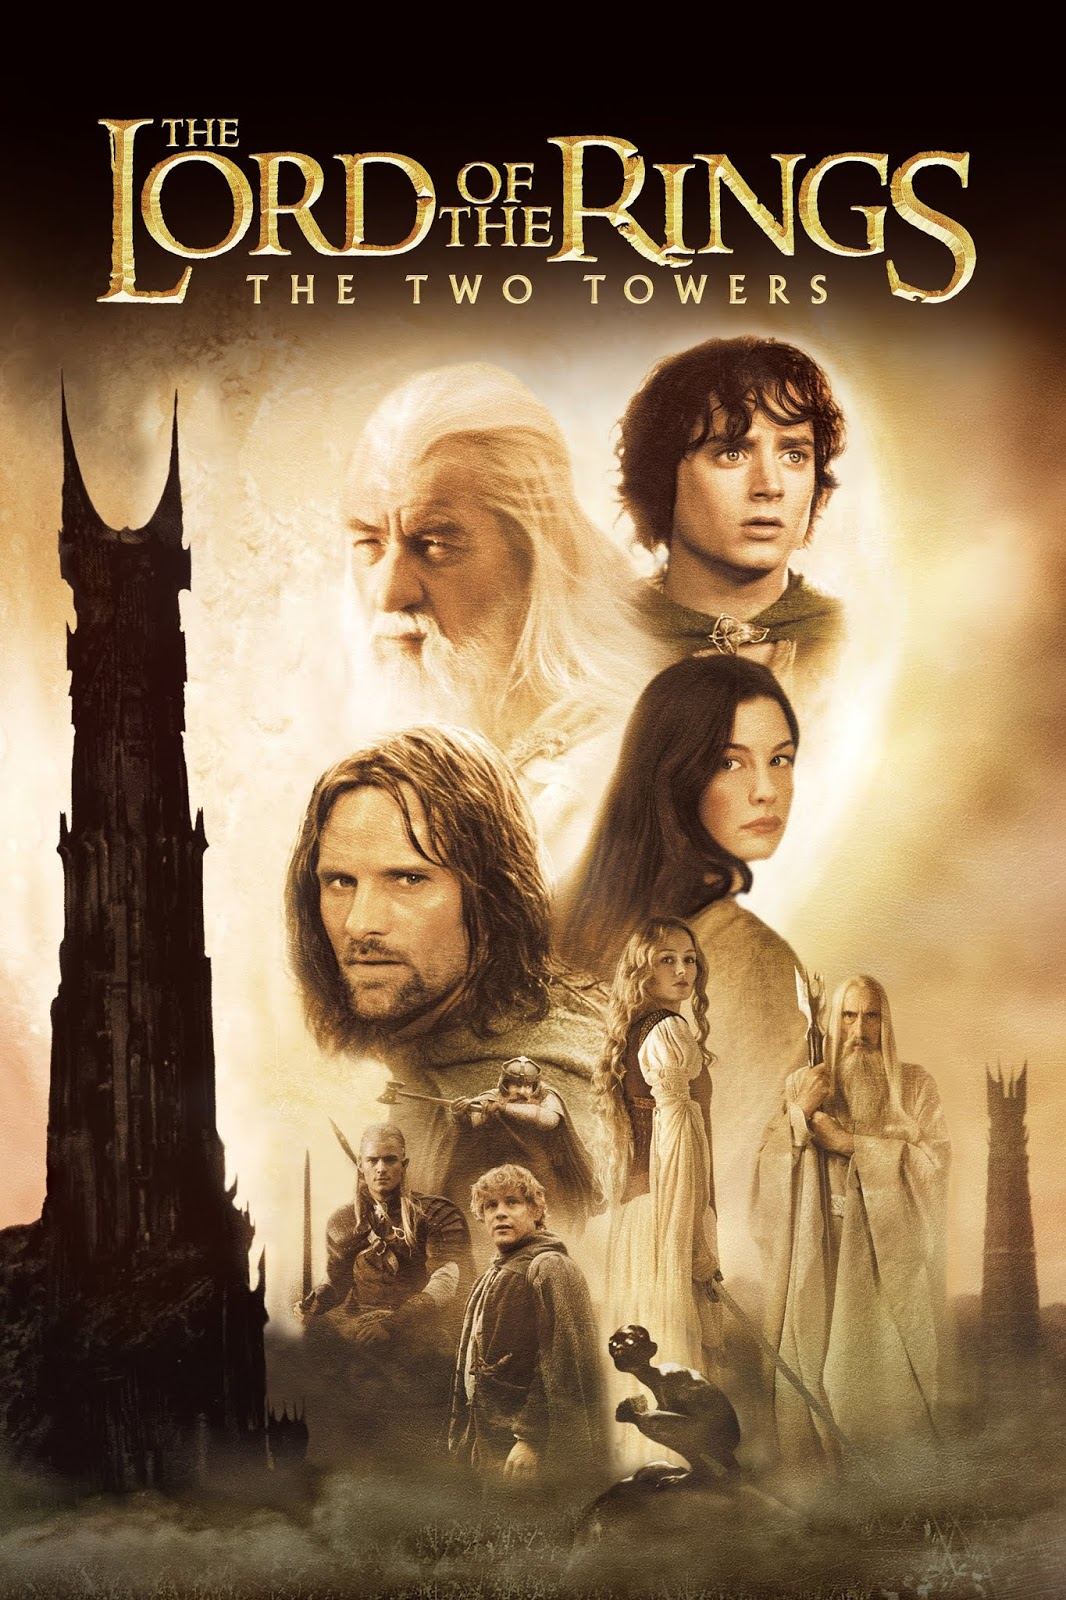 THE LORD OF THE RINGS 2 TAMIL DUBBED HD